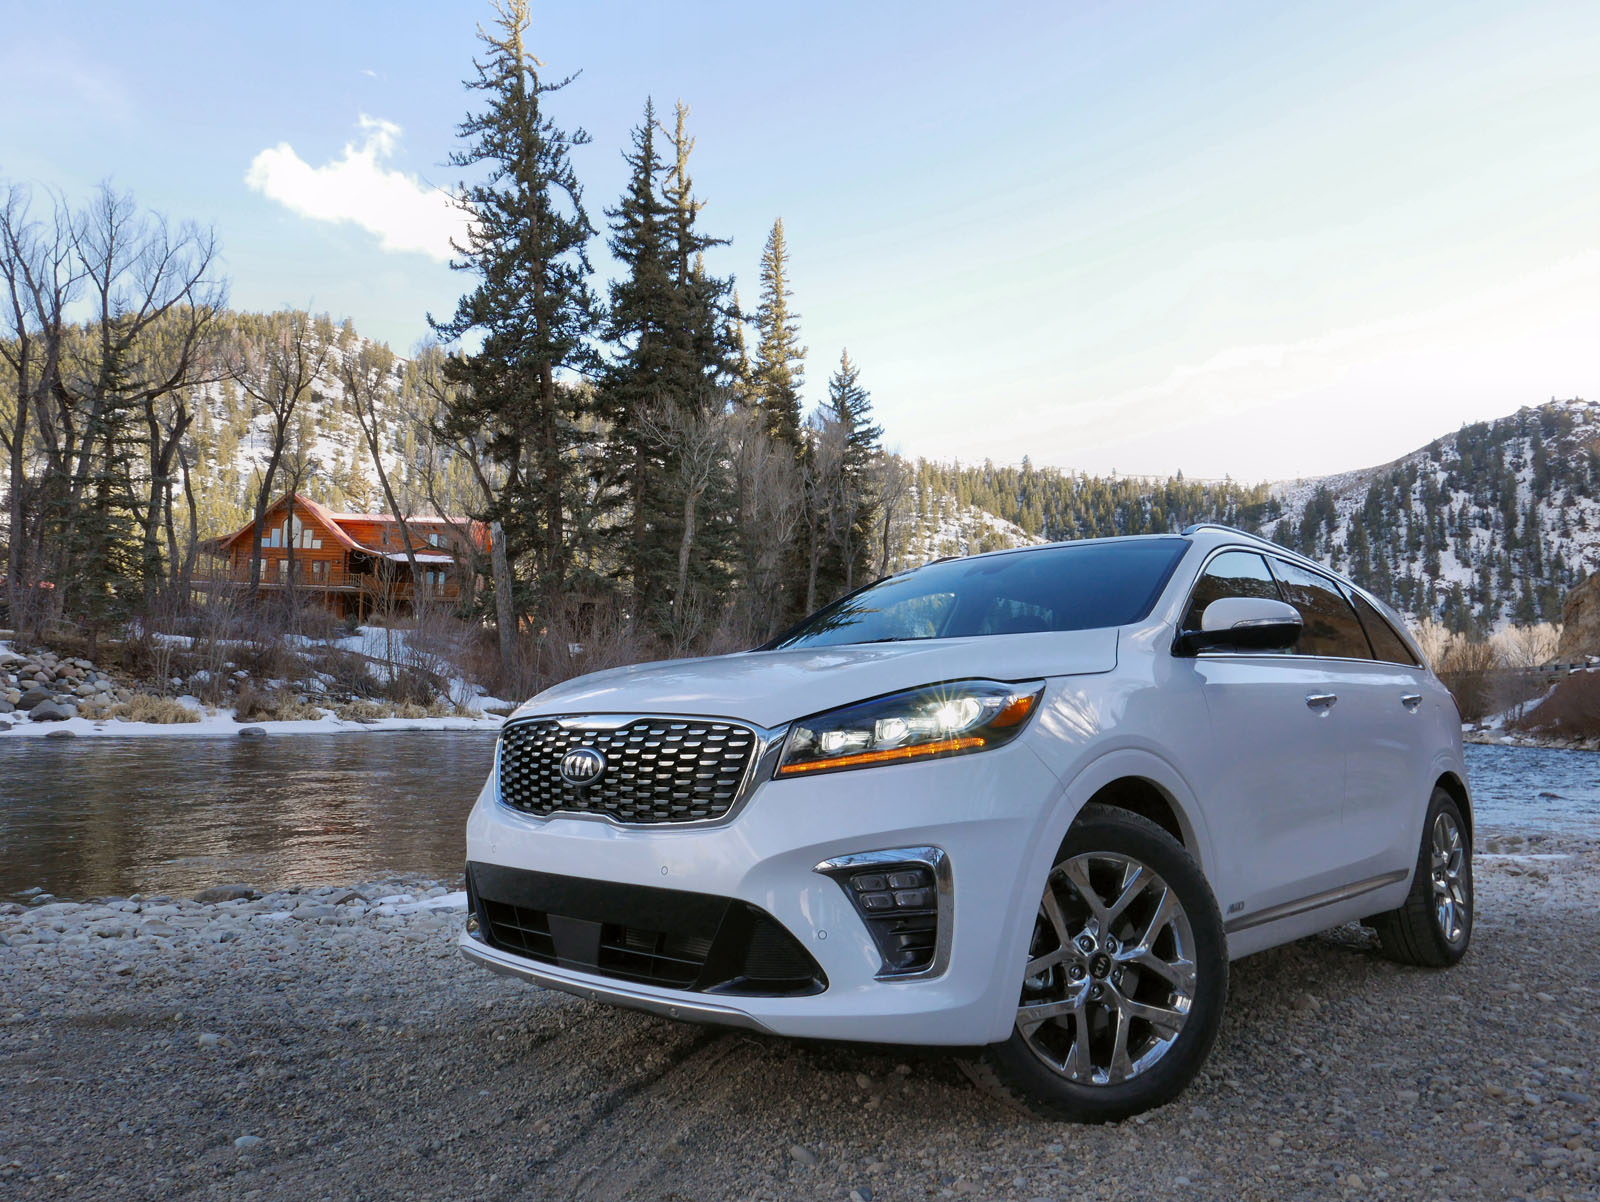 Where Is Nissan Made >> 2019 Kia Sorento Review and First Drive - AutoGuide.com